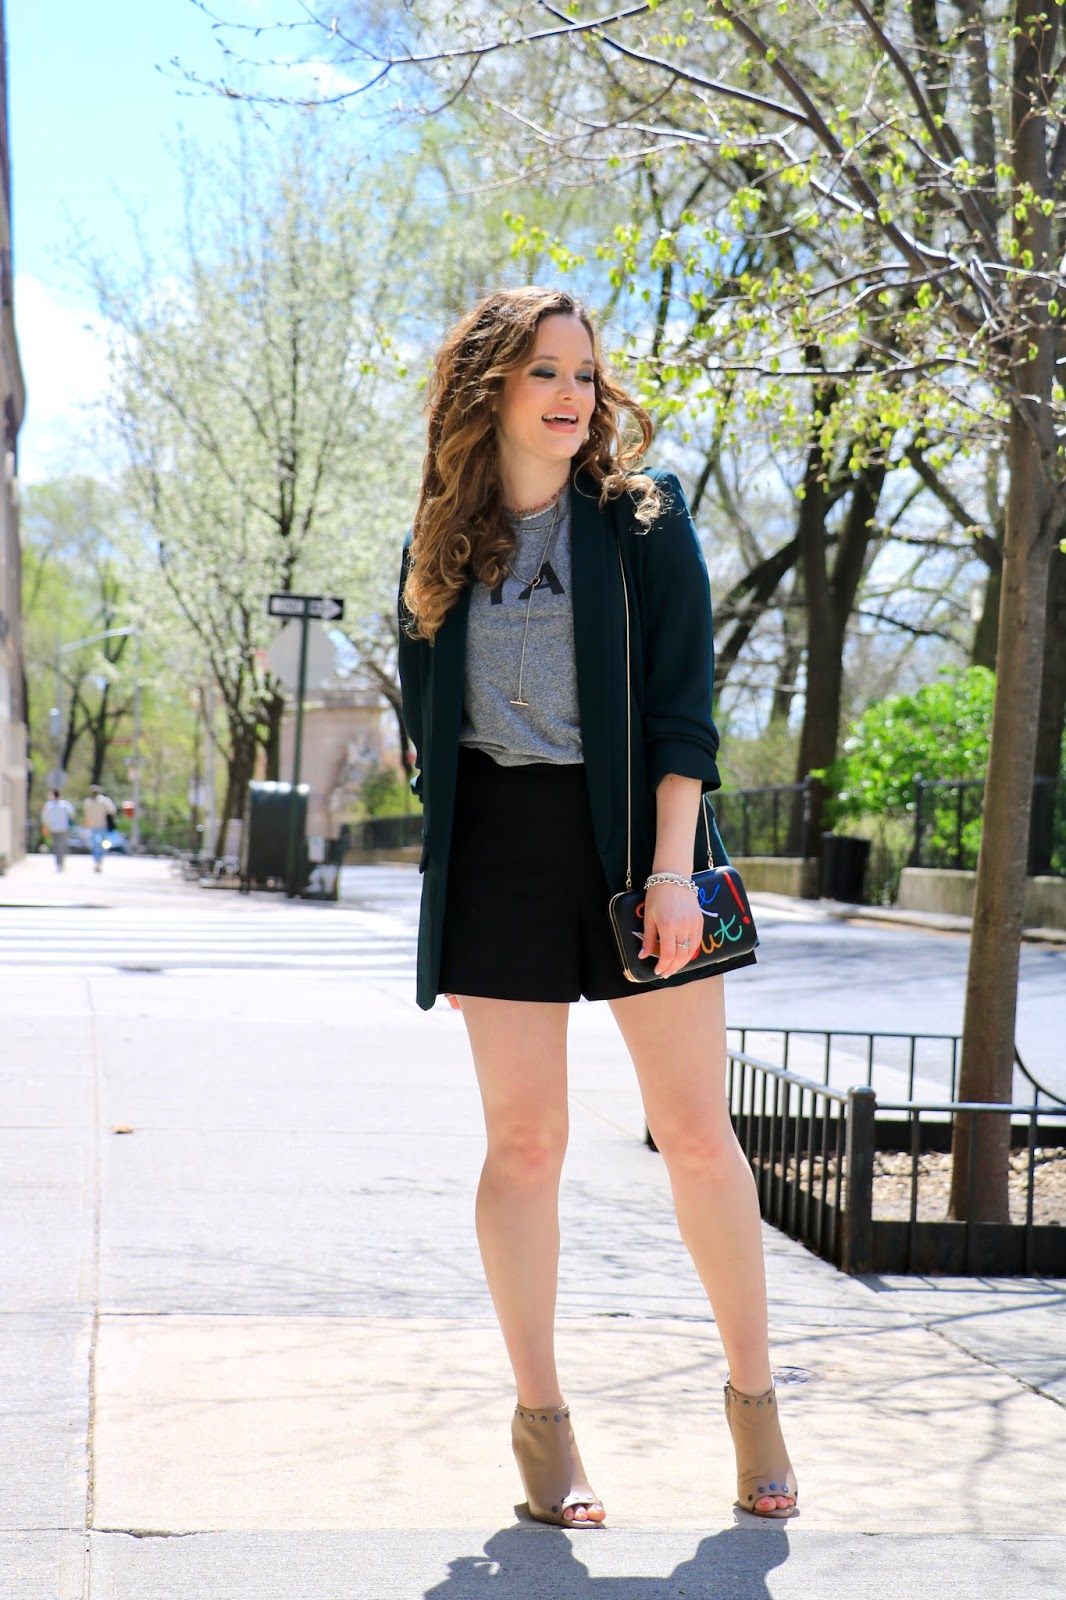 Nyc fashion blogger Kathleen Harper showing how to wear a blazer with shorts